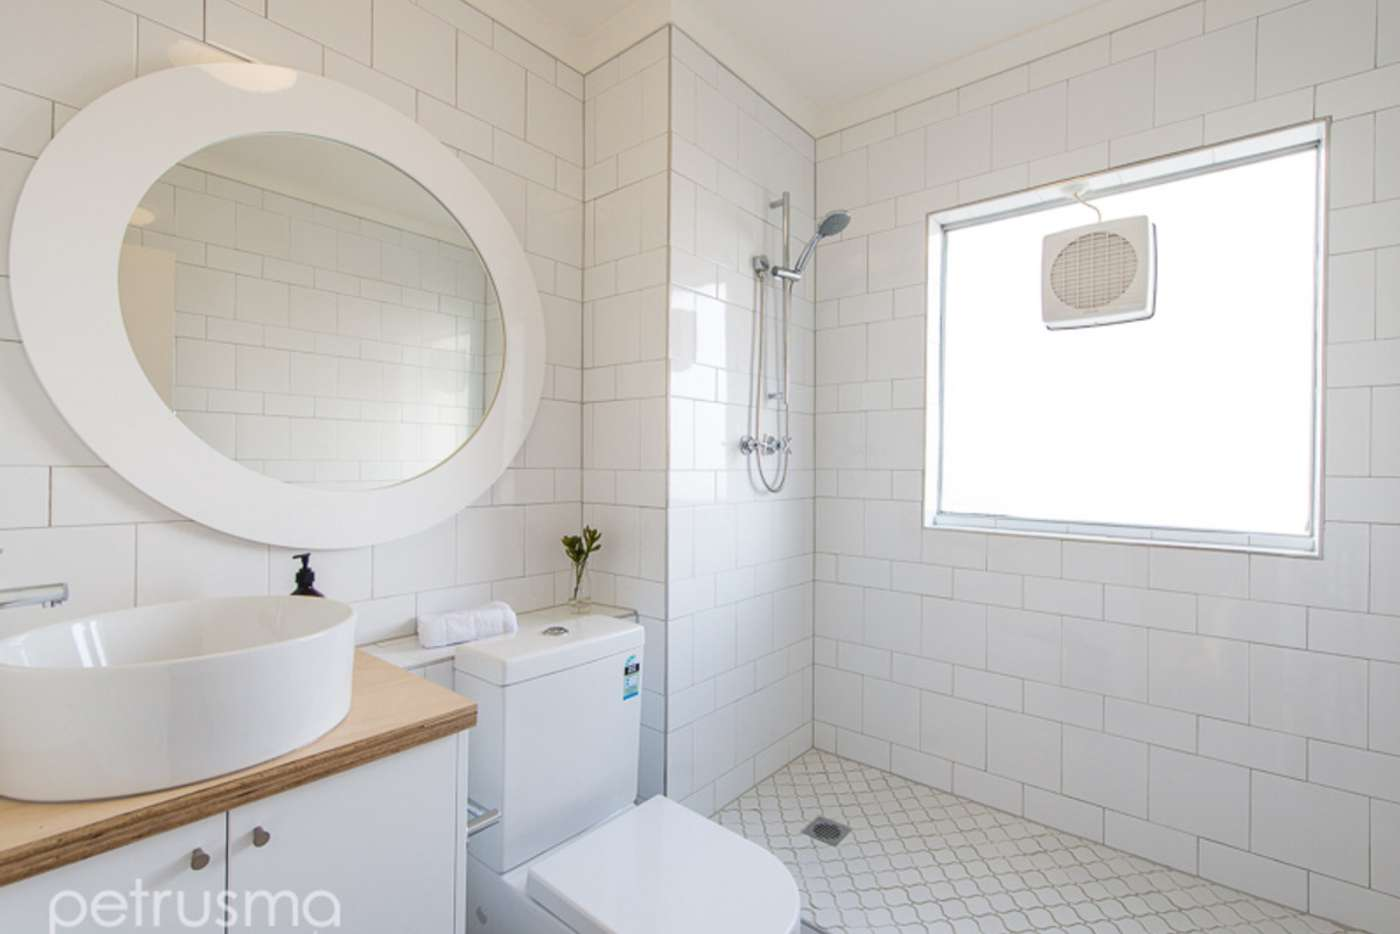 Seventh view of Homely apartment listing, 11/7 View Street, Sandy Bay TAS 7005